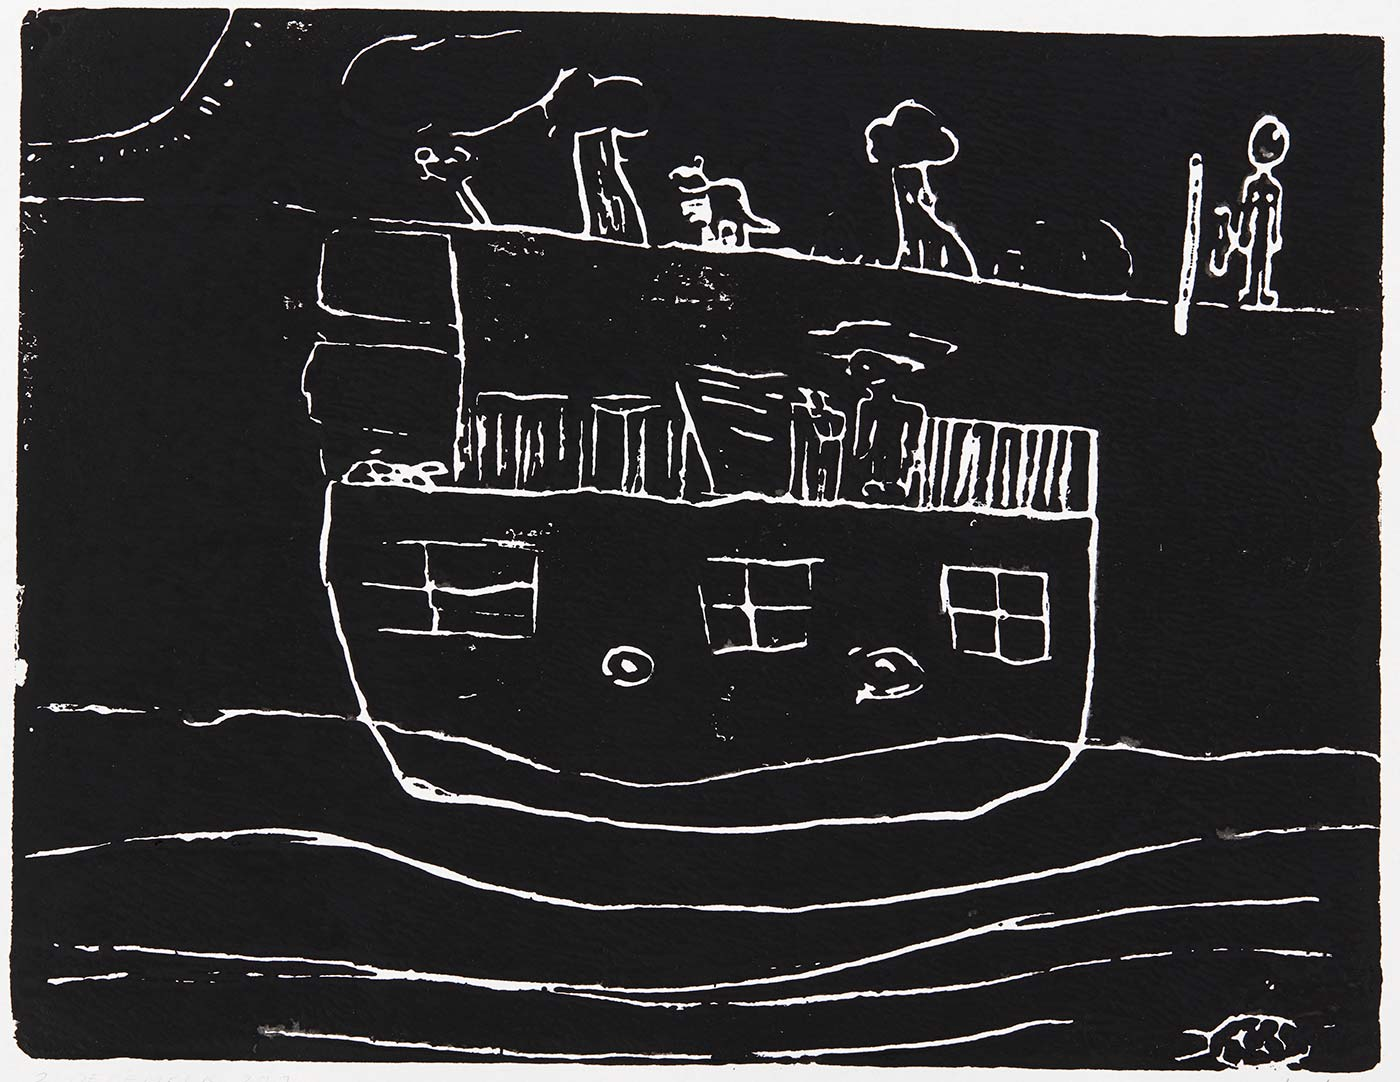 Print, black ink on white paper, depicting a boat on water in the foreground and the shoreline in the background. Annotated in pencil 'Blaine McLean 2/12/19'. - click to view larger image